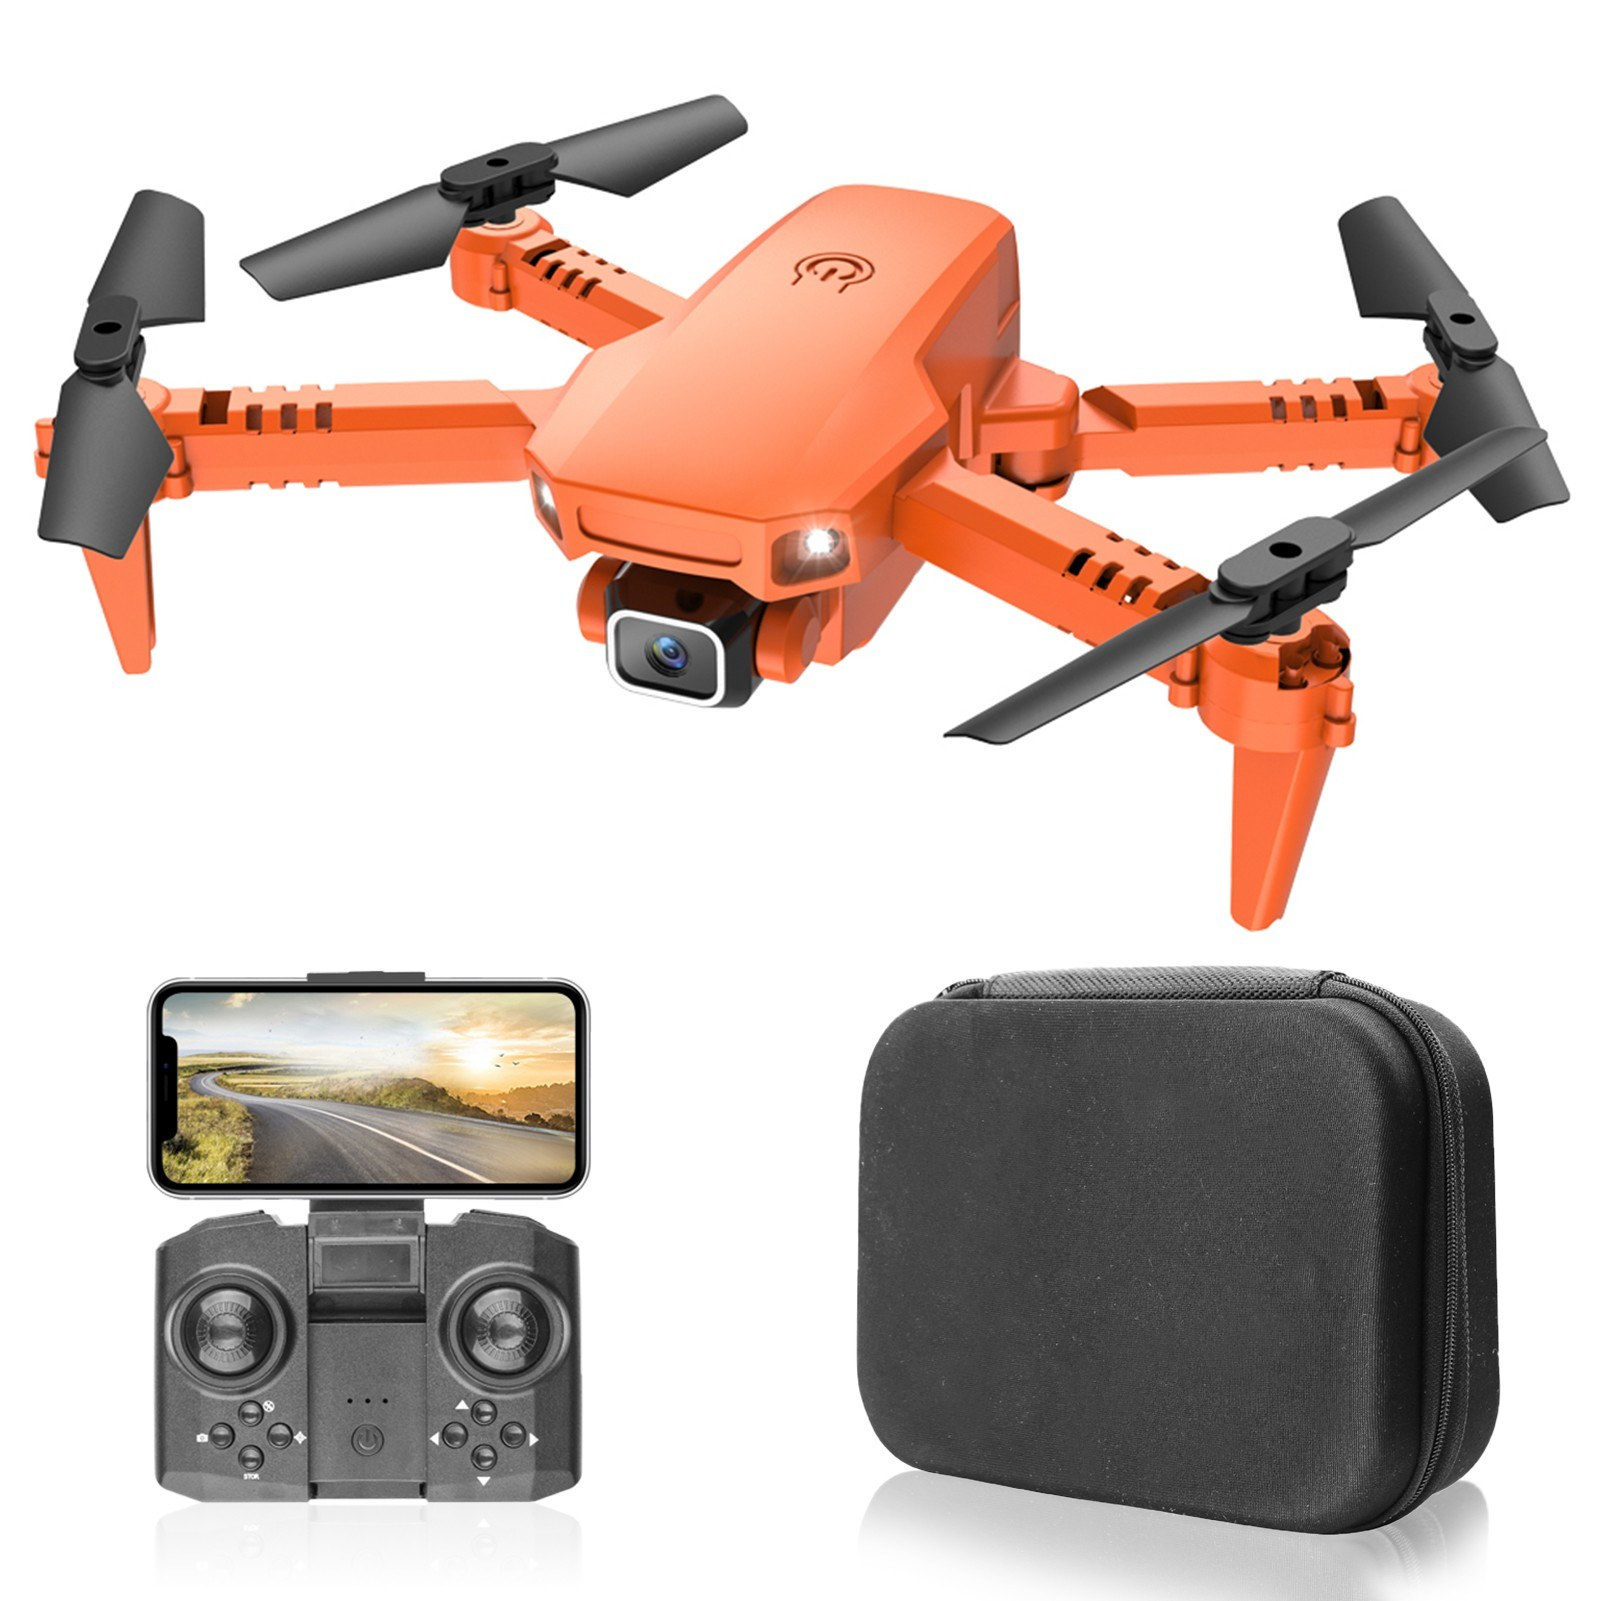 Tomtop - 45% OFF X1 WiFi FPV 4K Camera Mini Foldable Quadcopter, Free Shipping $31.99